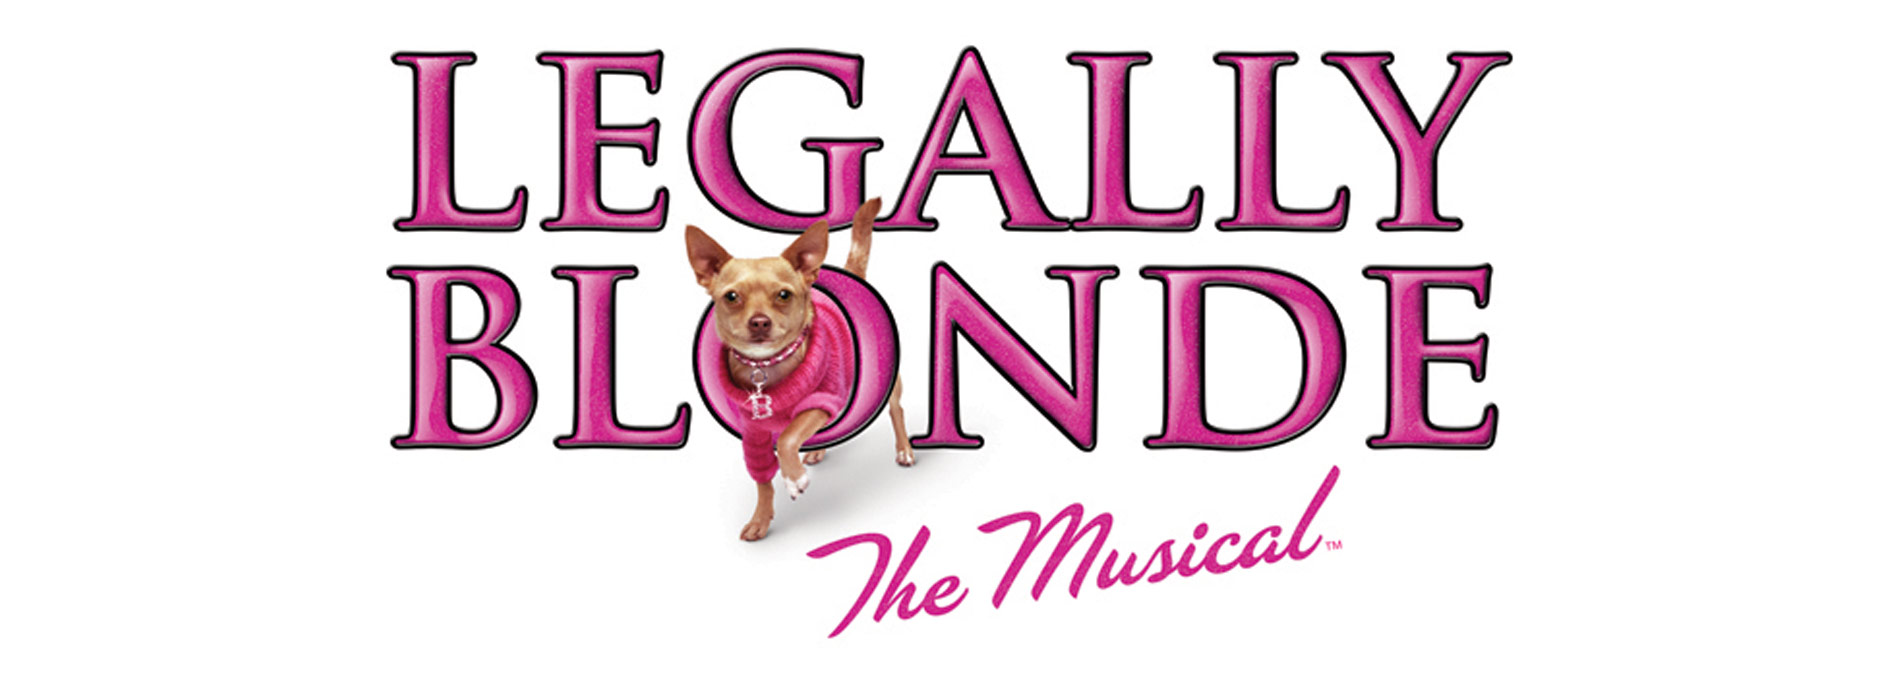 blonde stereotype essay Open document below is an essay on analysing stereotypes in 'legally blonde' from anti essays, your source for research papers, essays, and term paper examples.